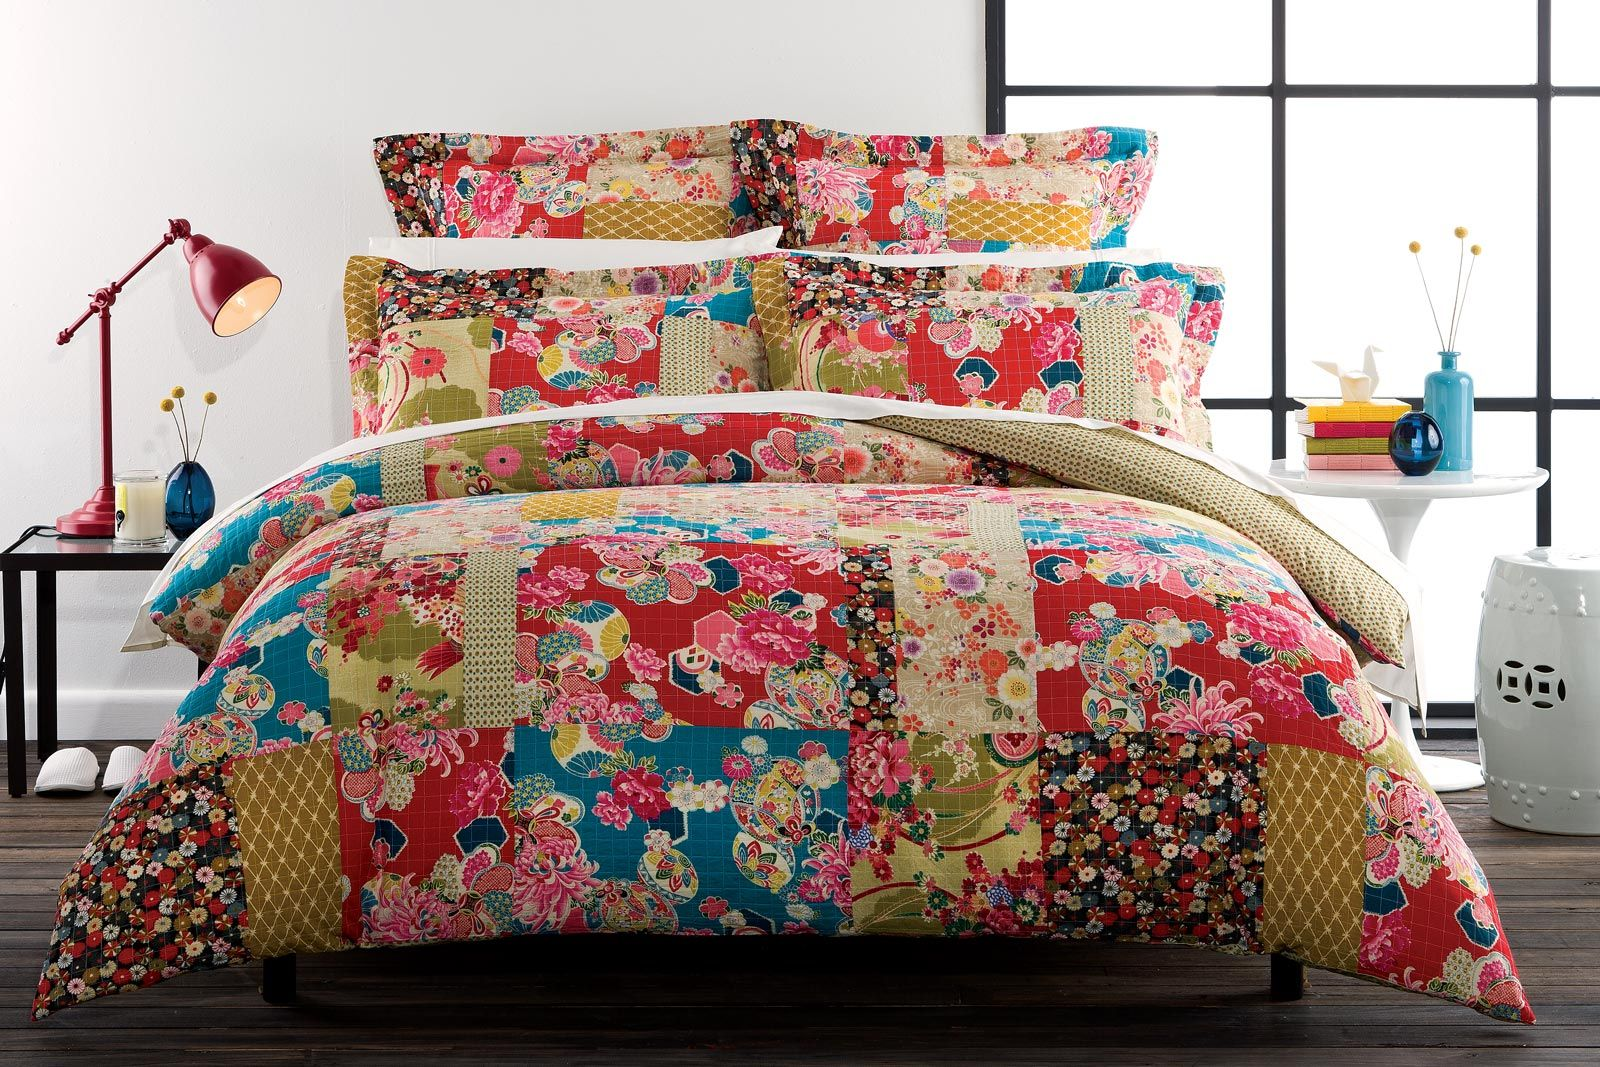 Bed sheets designs patchwork - Emiko Pretty Patchwork Look From Bed Bath N Table